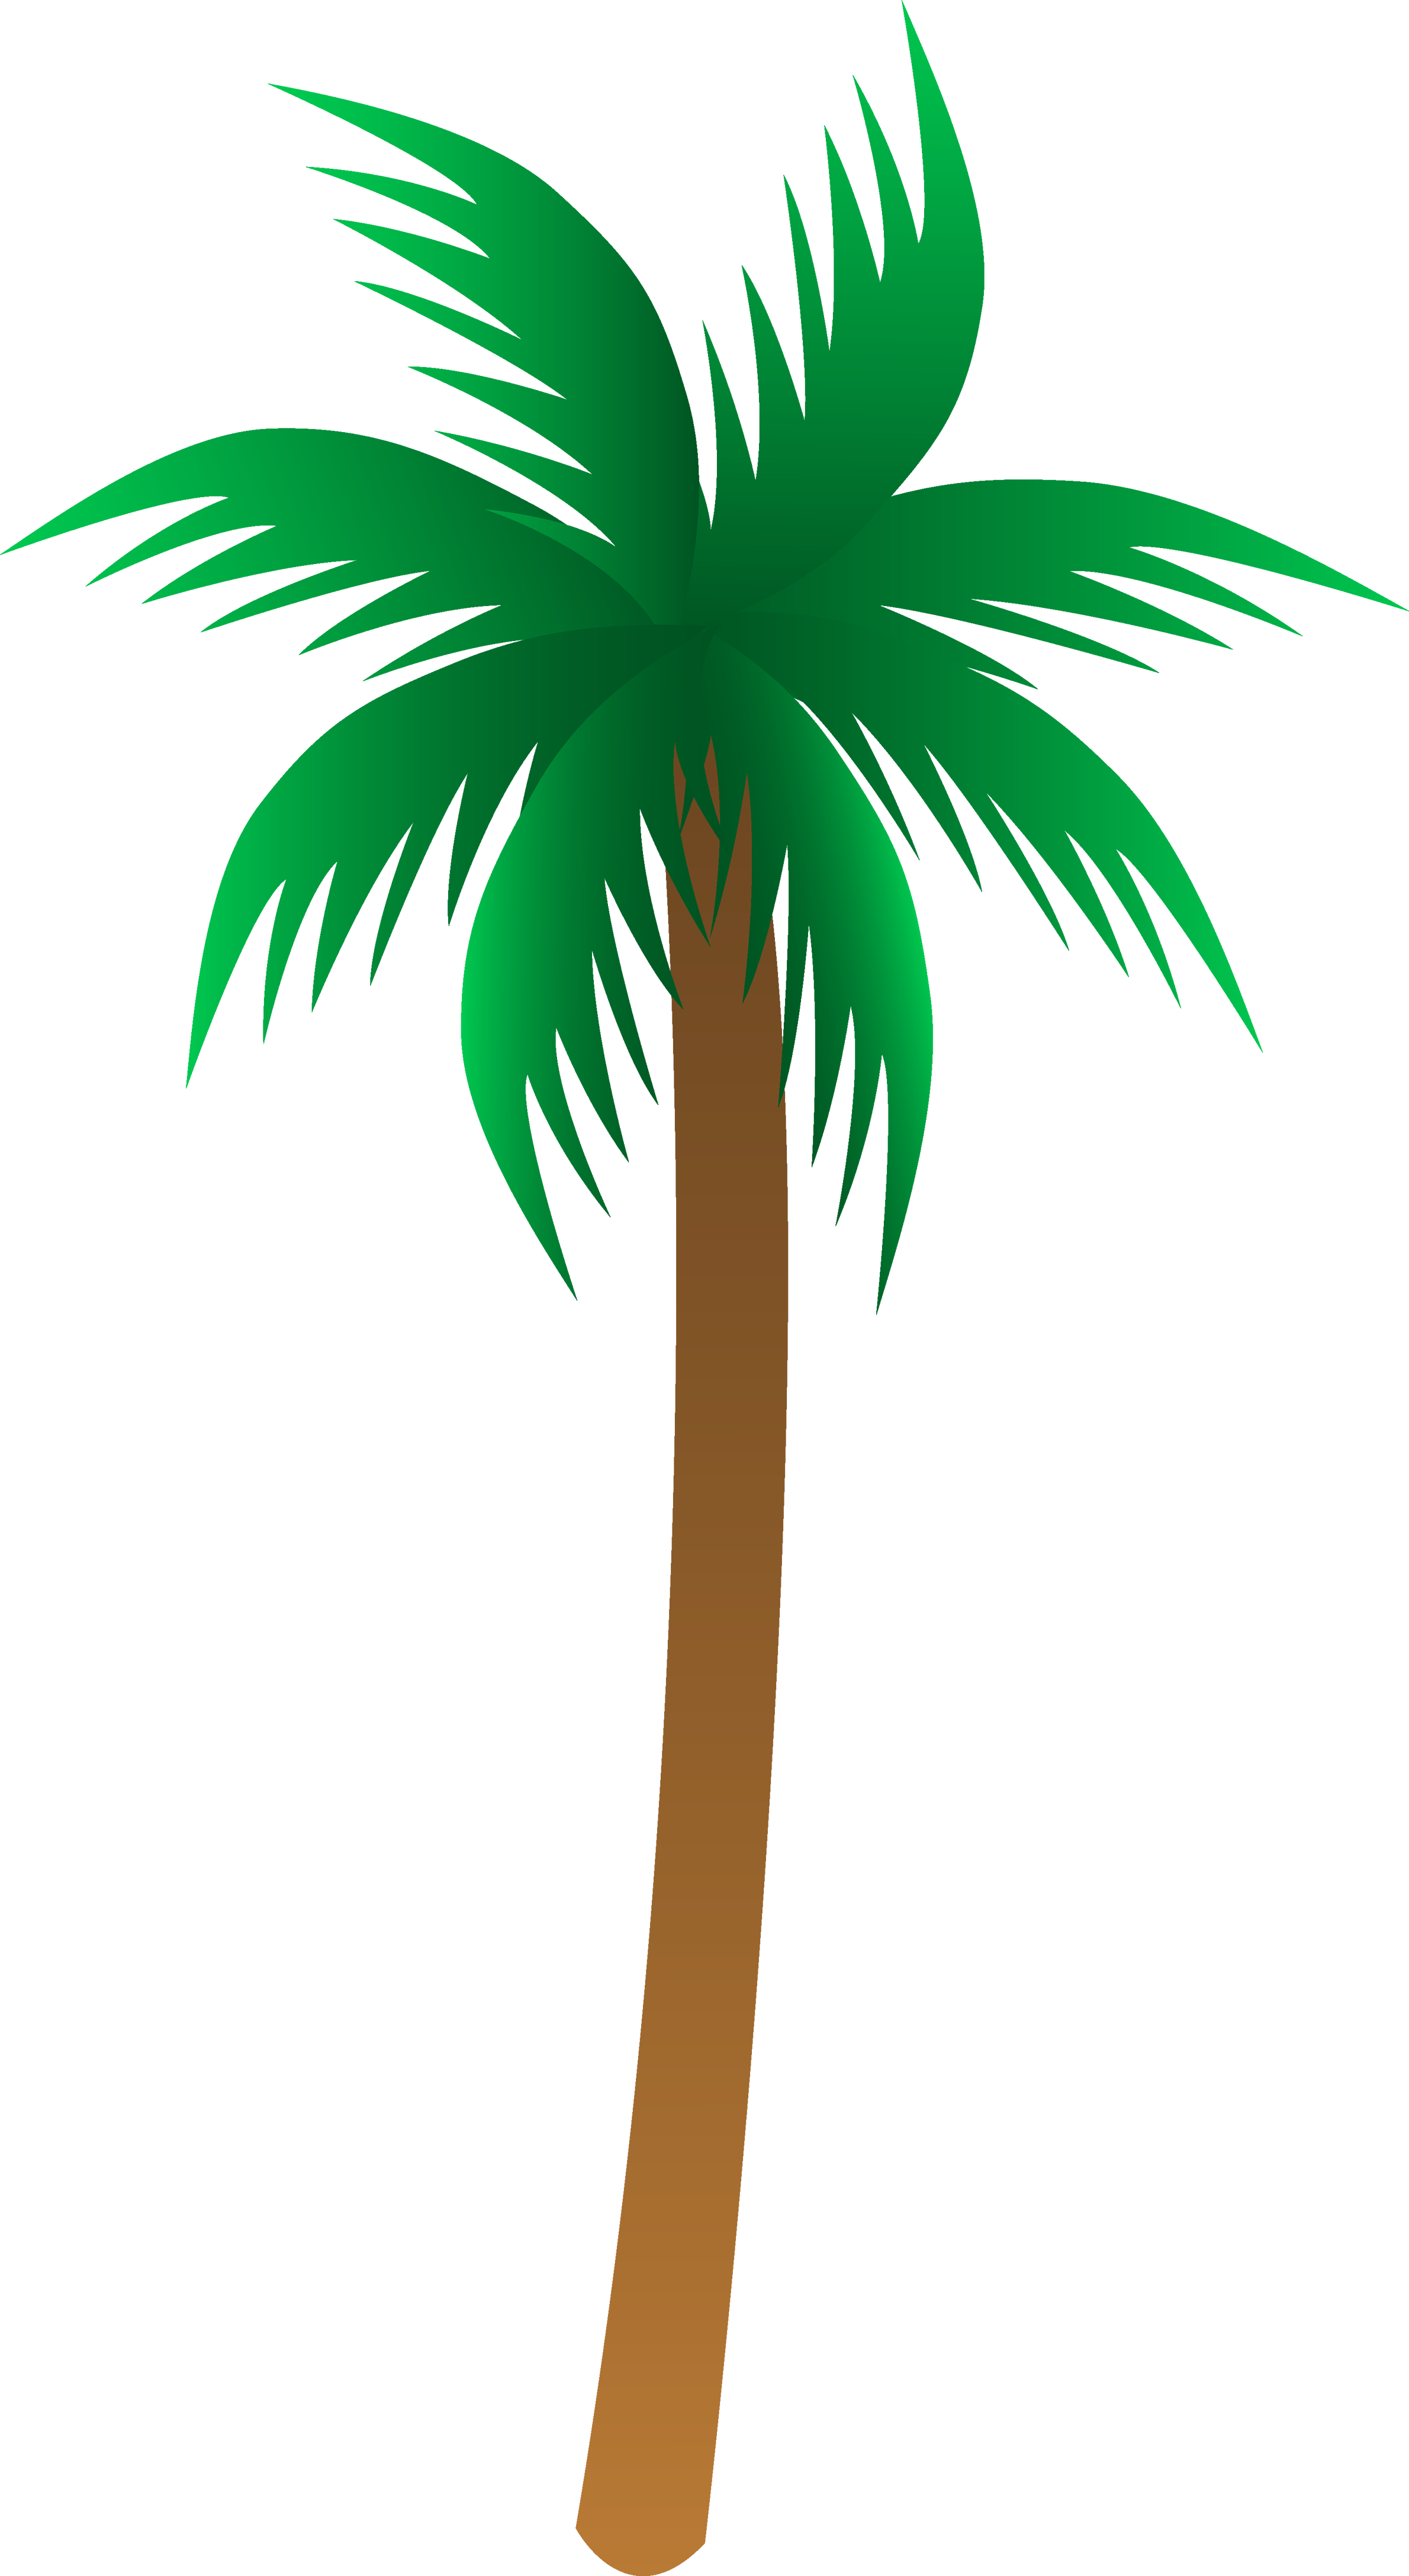 Palm tree clipart vector free vector transparent stock Palm Tree | Palm Tree | Palm tree png, Palm tree vector ... vector transparent stock